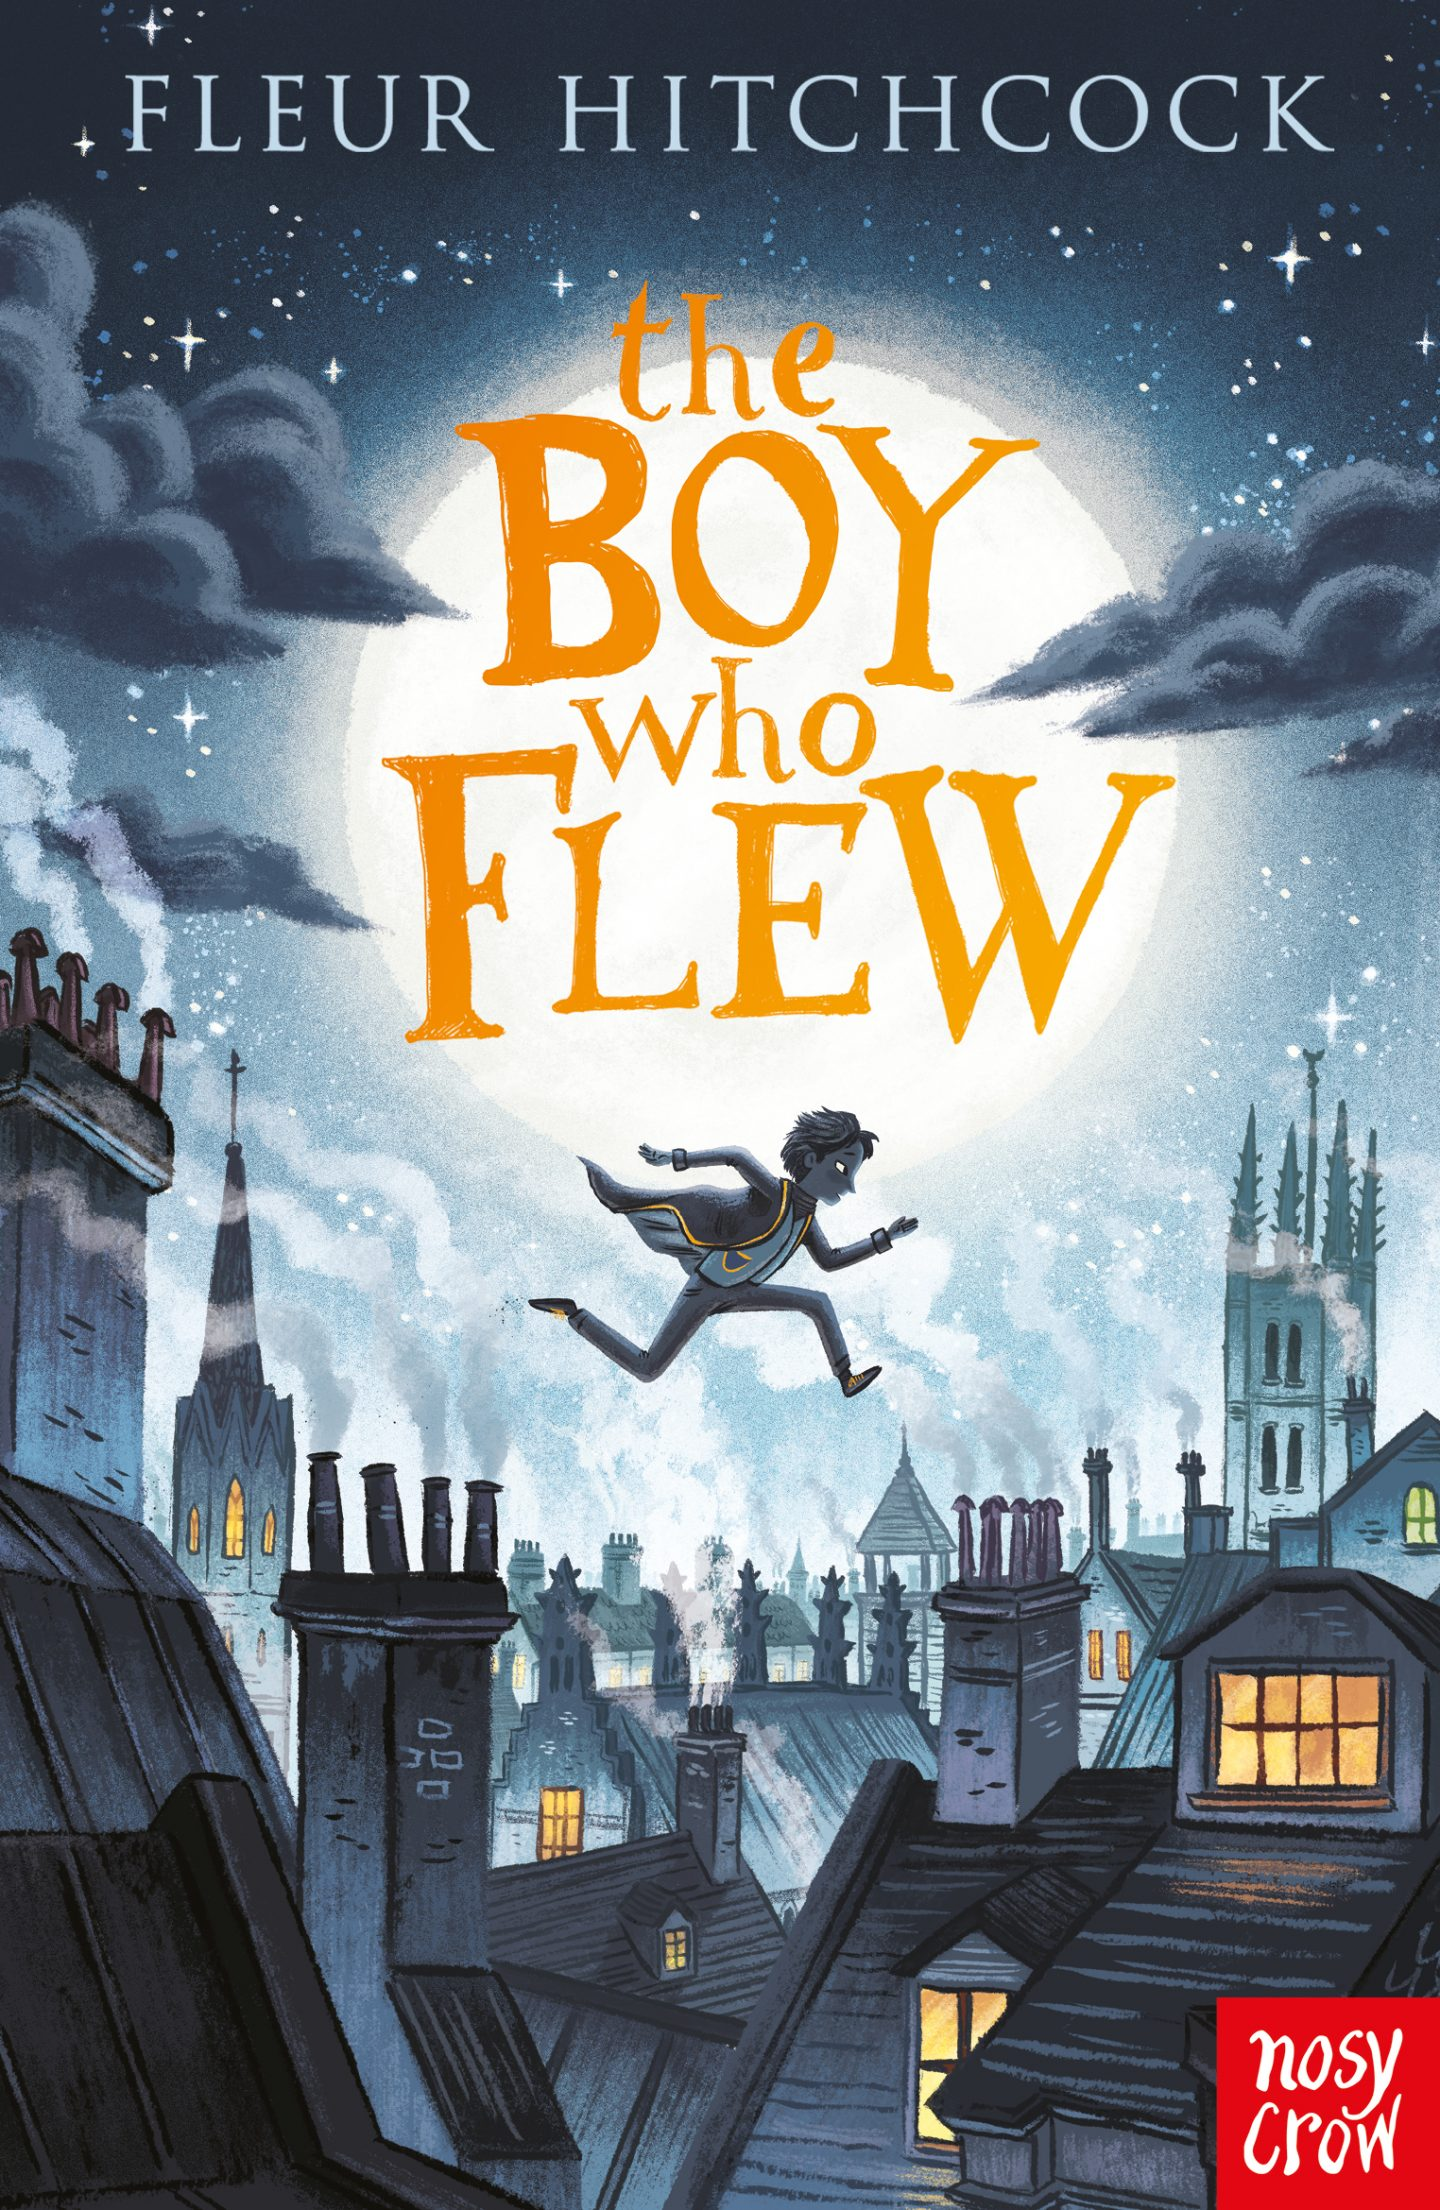 Children's Book Review: The Boy Who Flew by Fleur Hitchcock